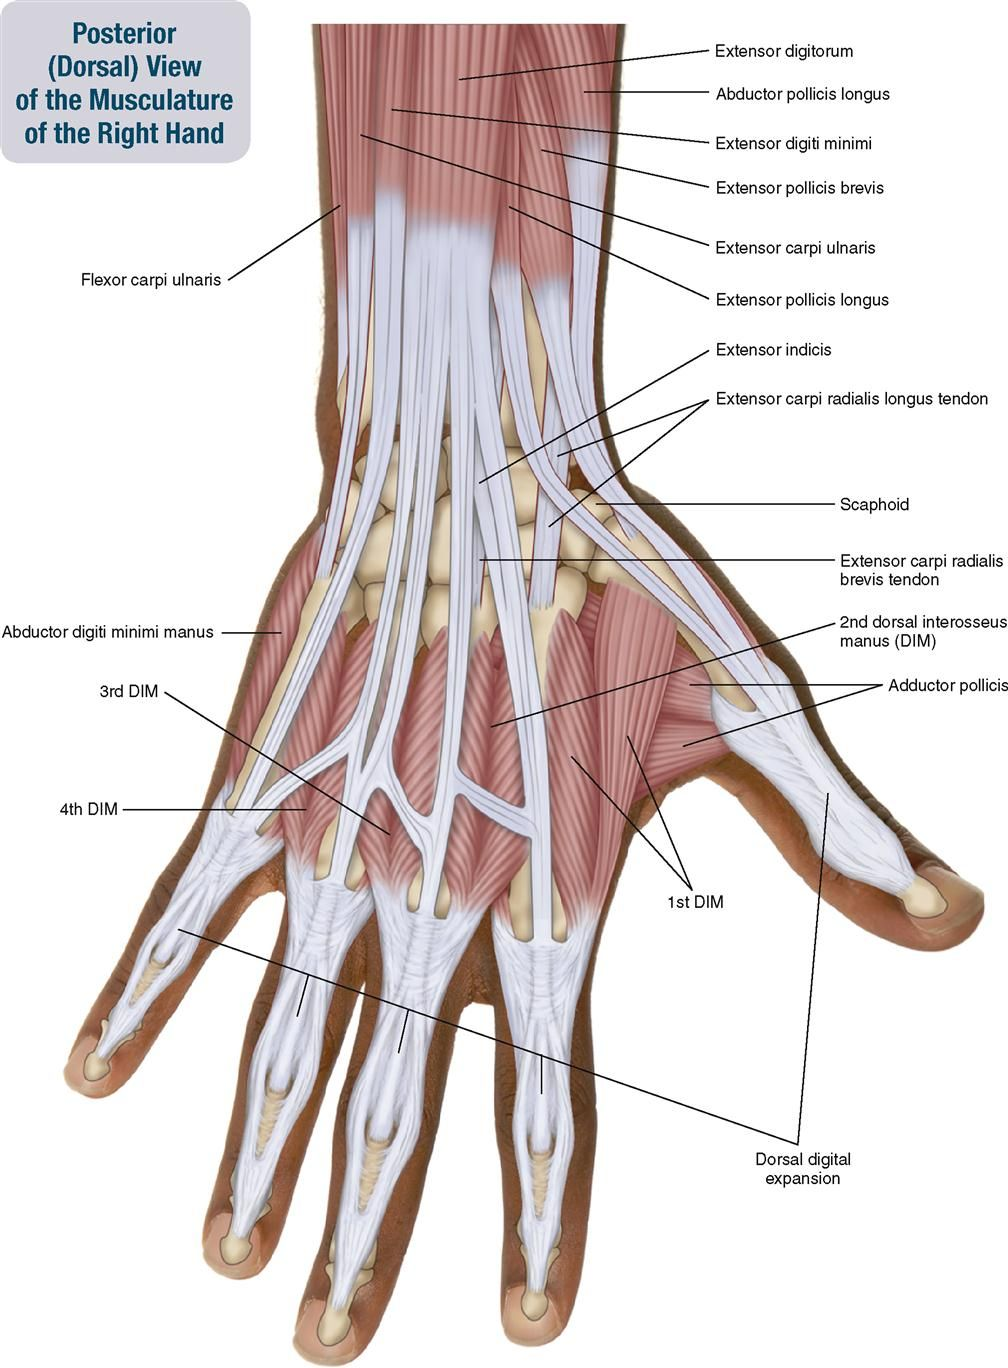 tendons in right hand 7 muscles of the forearm and hand Body Tendons Diagram tendons in right hand 7 muscles of the forearm and hand musculoskeletal key photo, tendons in right hand 7 muscles of the forearm and hand